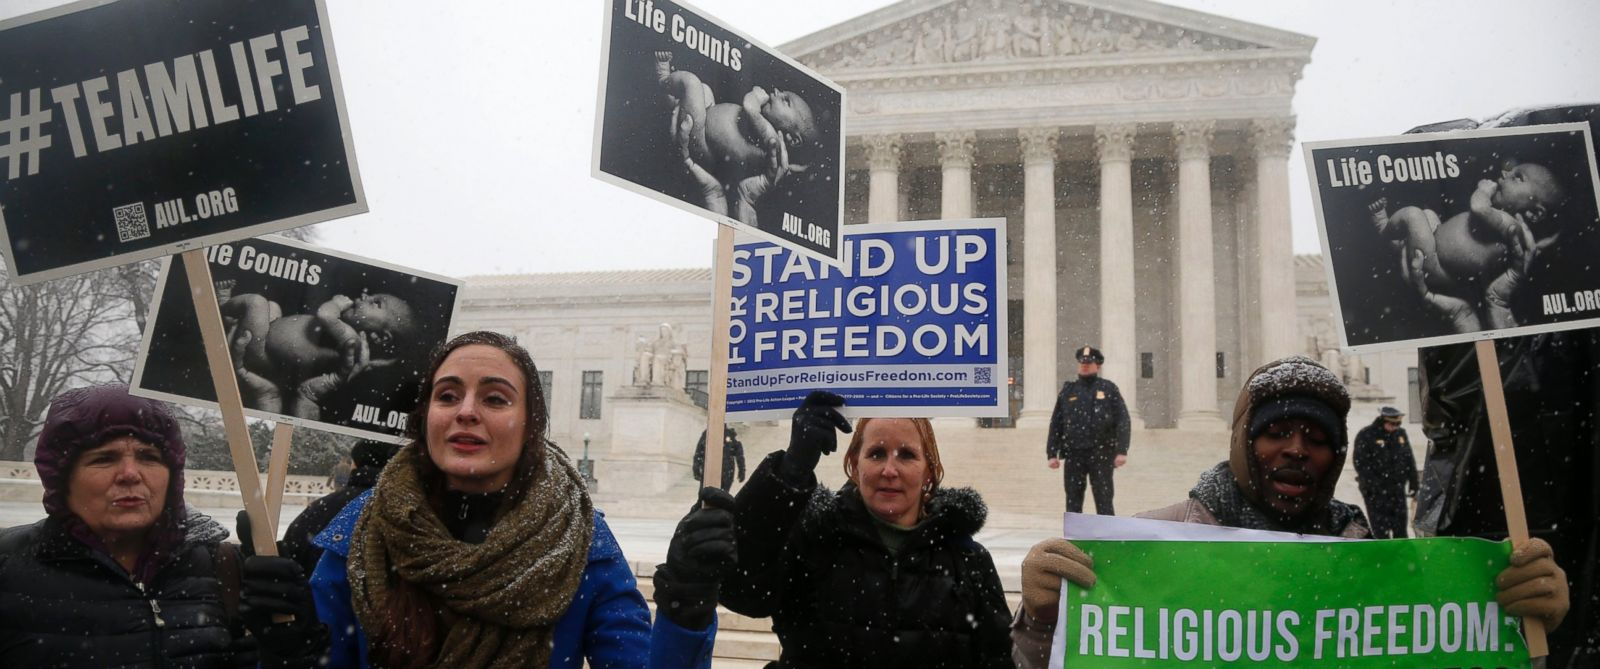 PHOTO: Demonstrators participate in a rally in front of the Supreme Court in Washington on March 25, 2014.